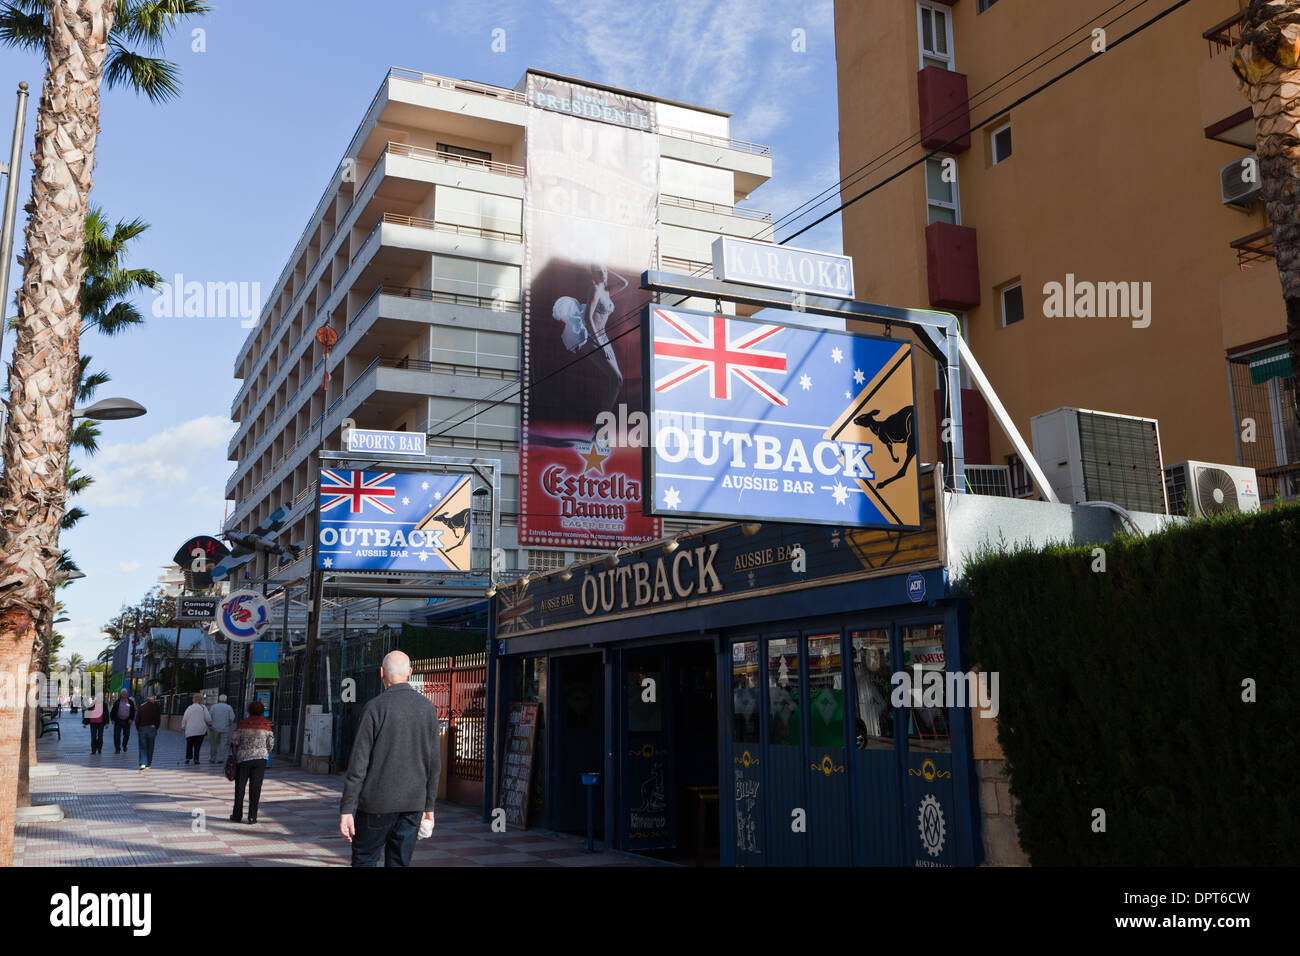 Benidorm, Costa Blanca, Spain. Outback Australian Aussie Bar and Hotel Presidente - Stock Image